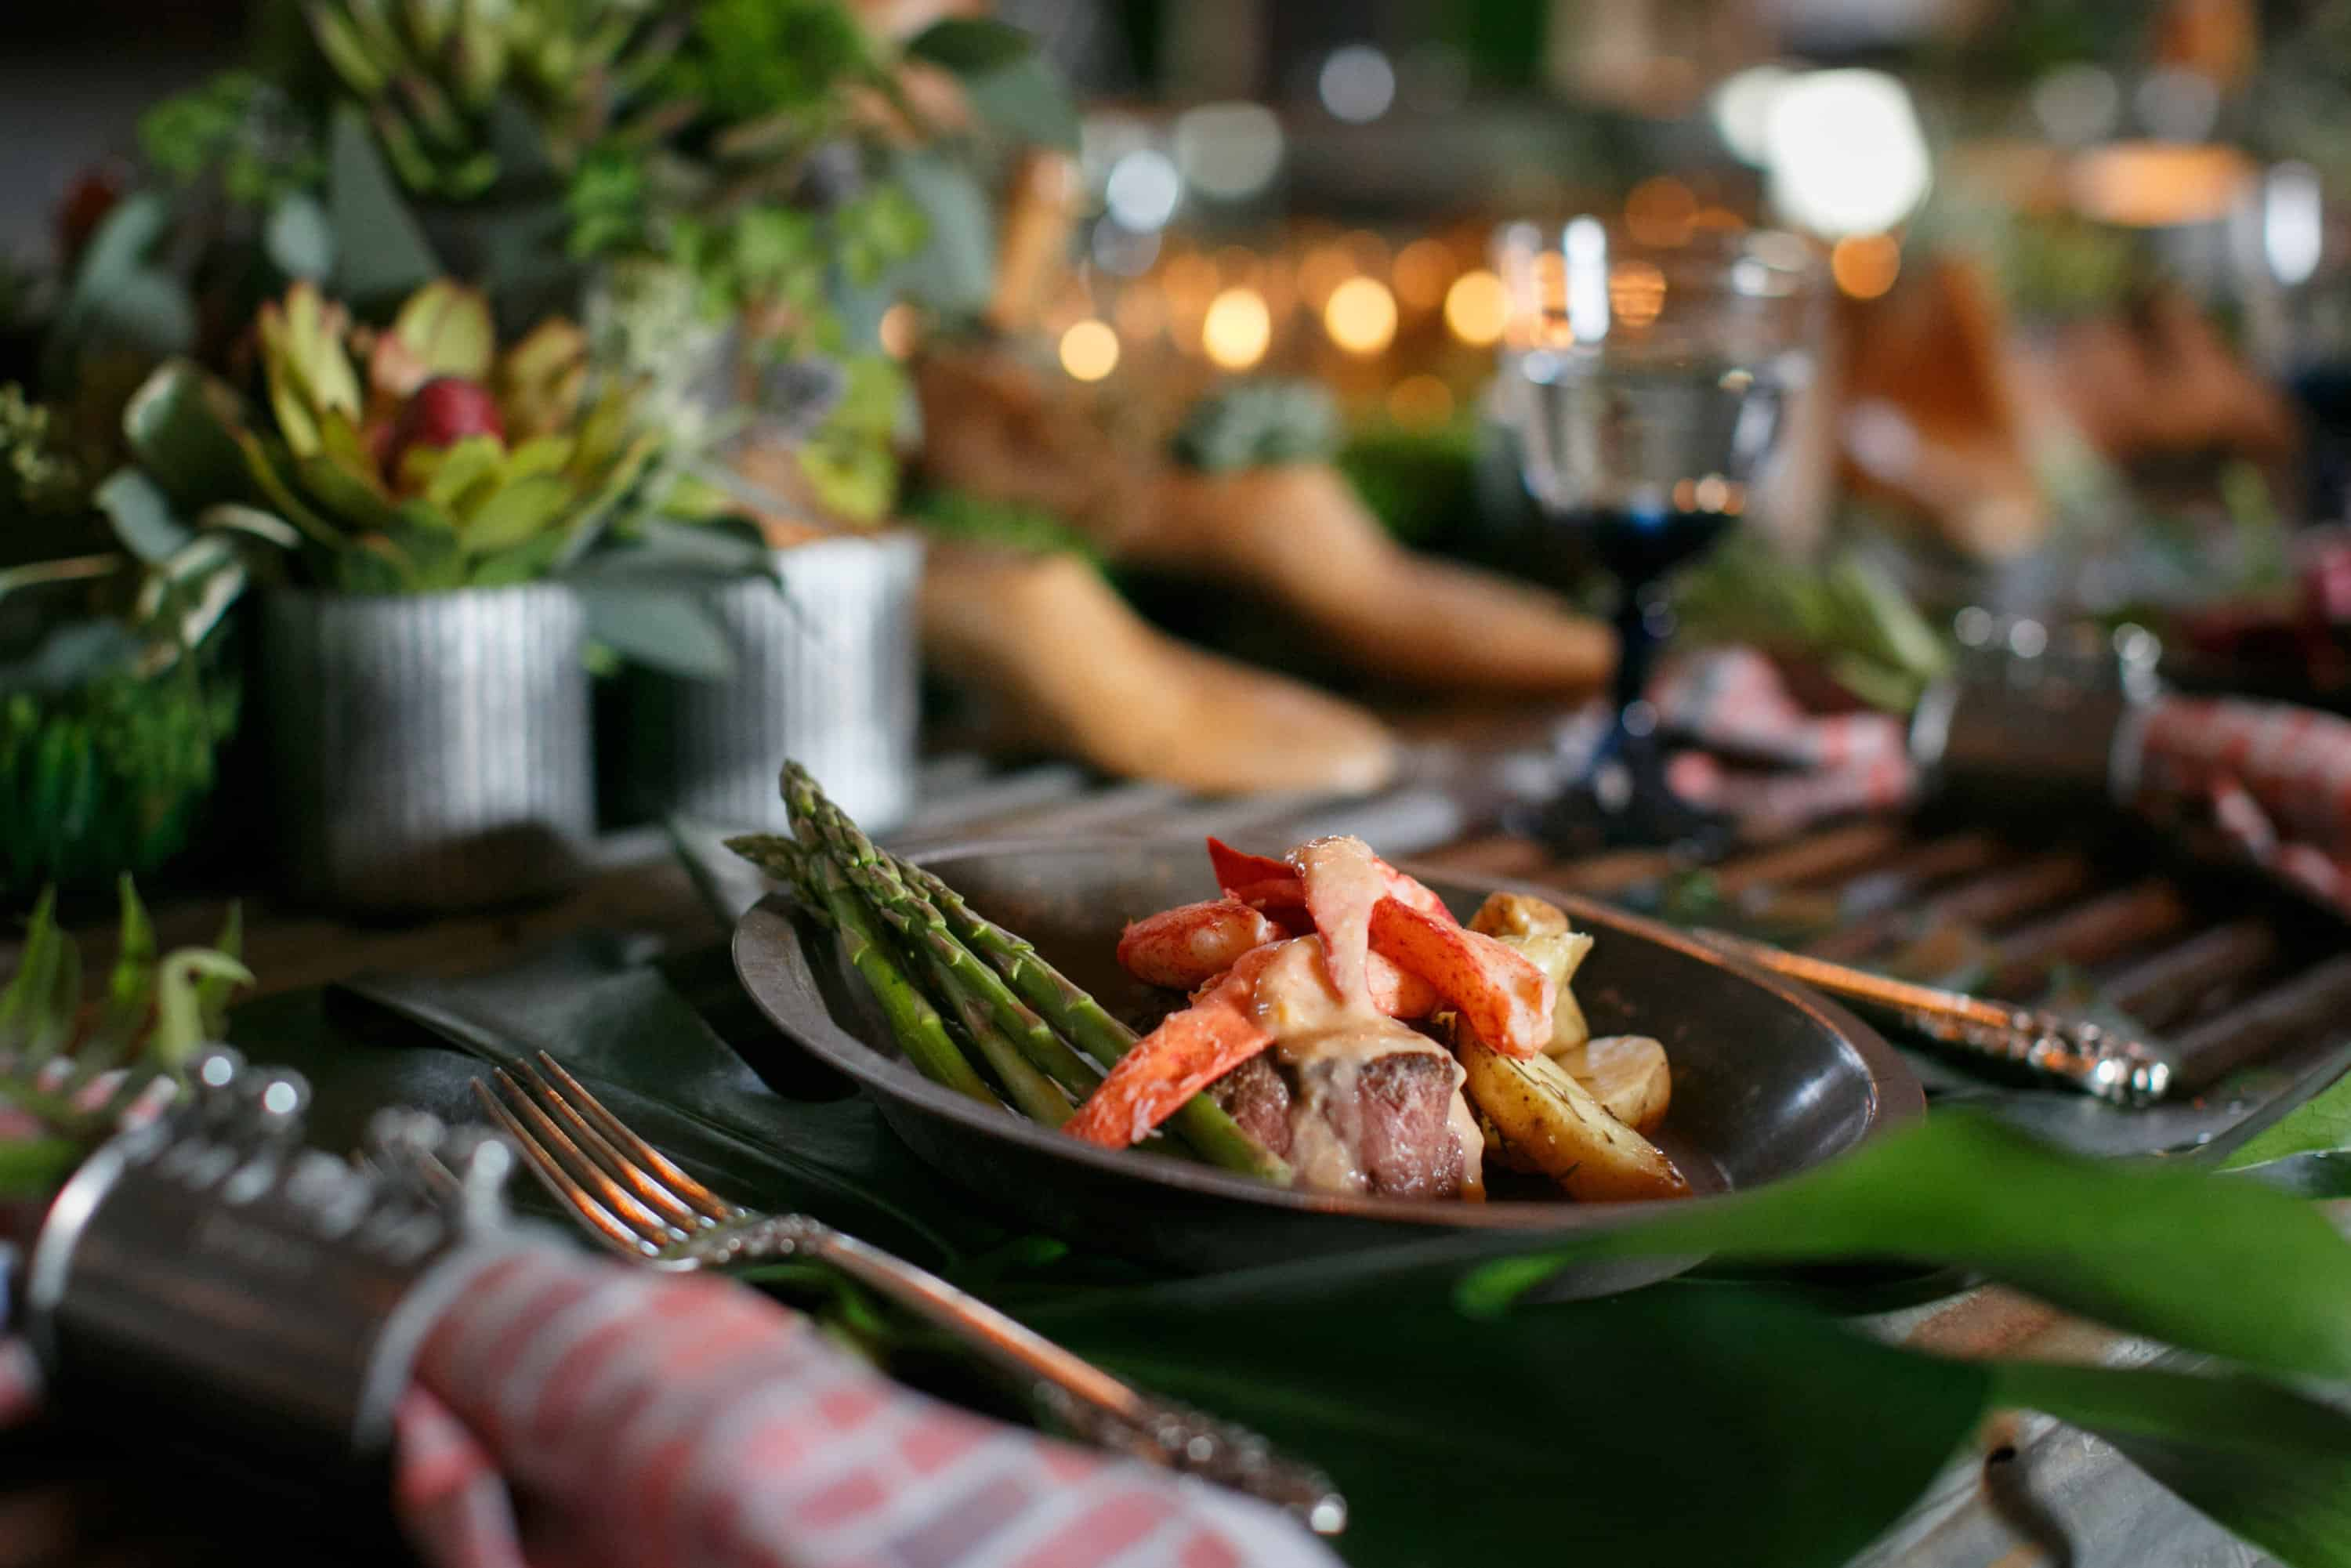 Tablescape with a dish of lobster, potatoes, and veggies